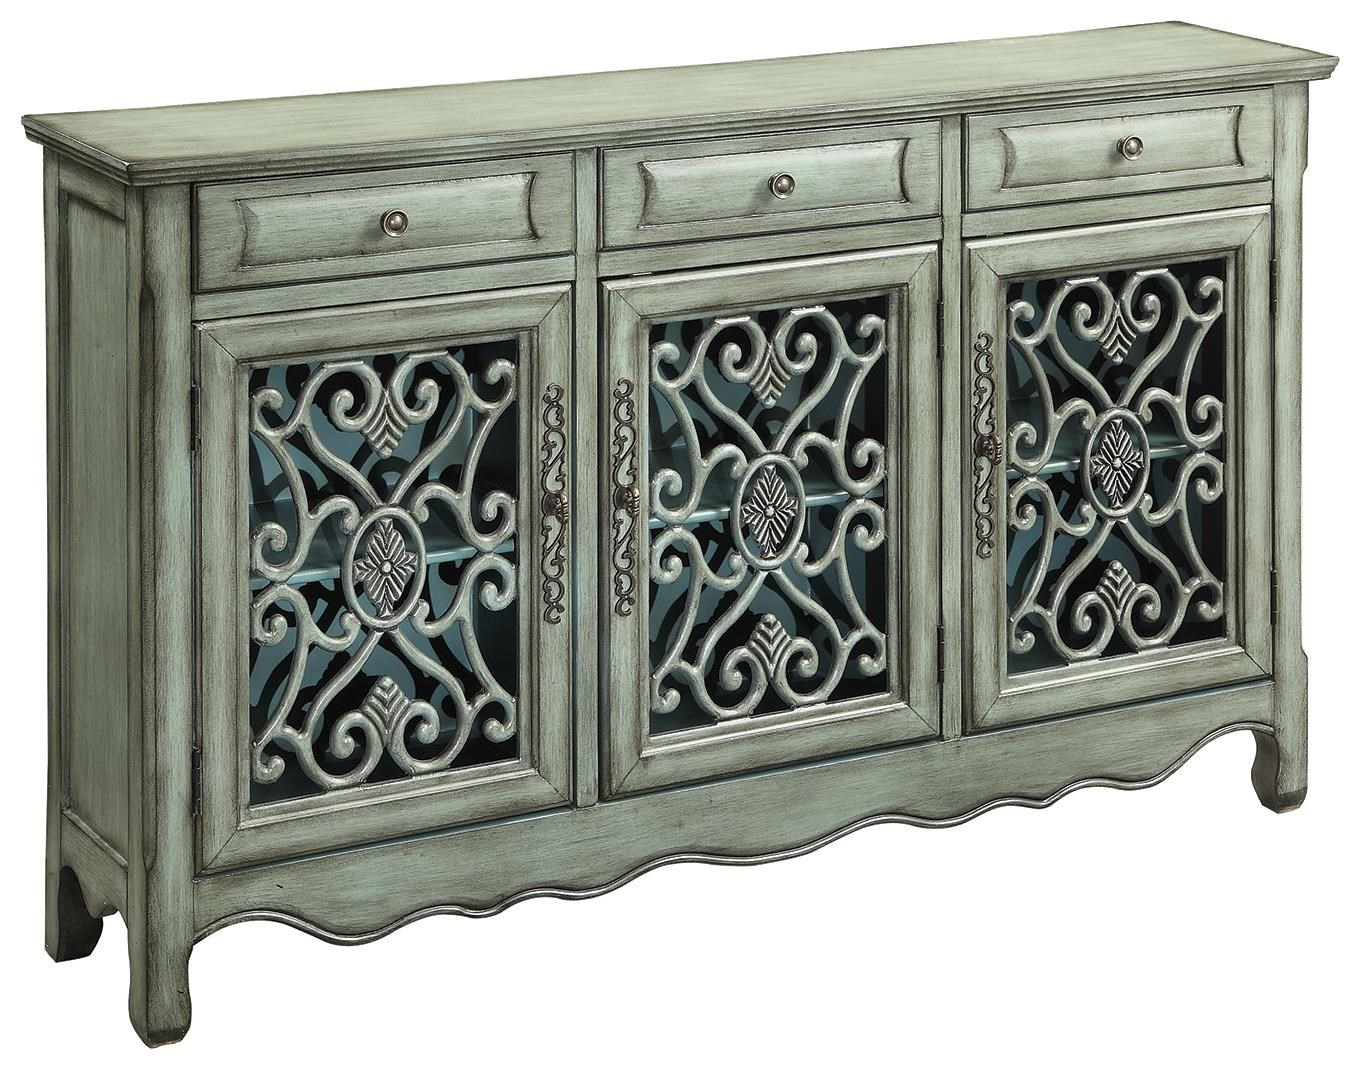 Charmant Coaster Accent CabinetsAccent Cabinet ...